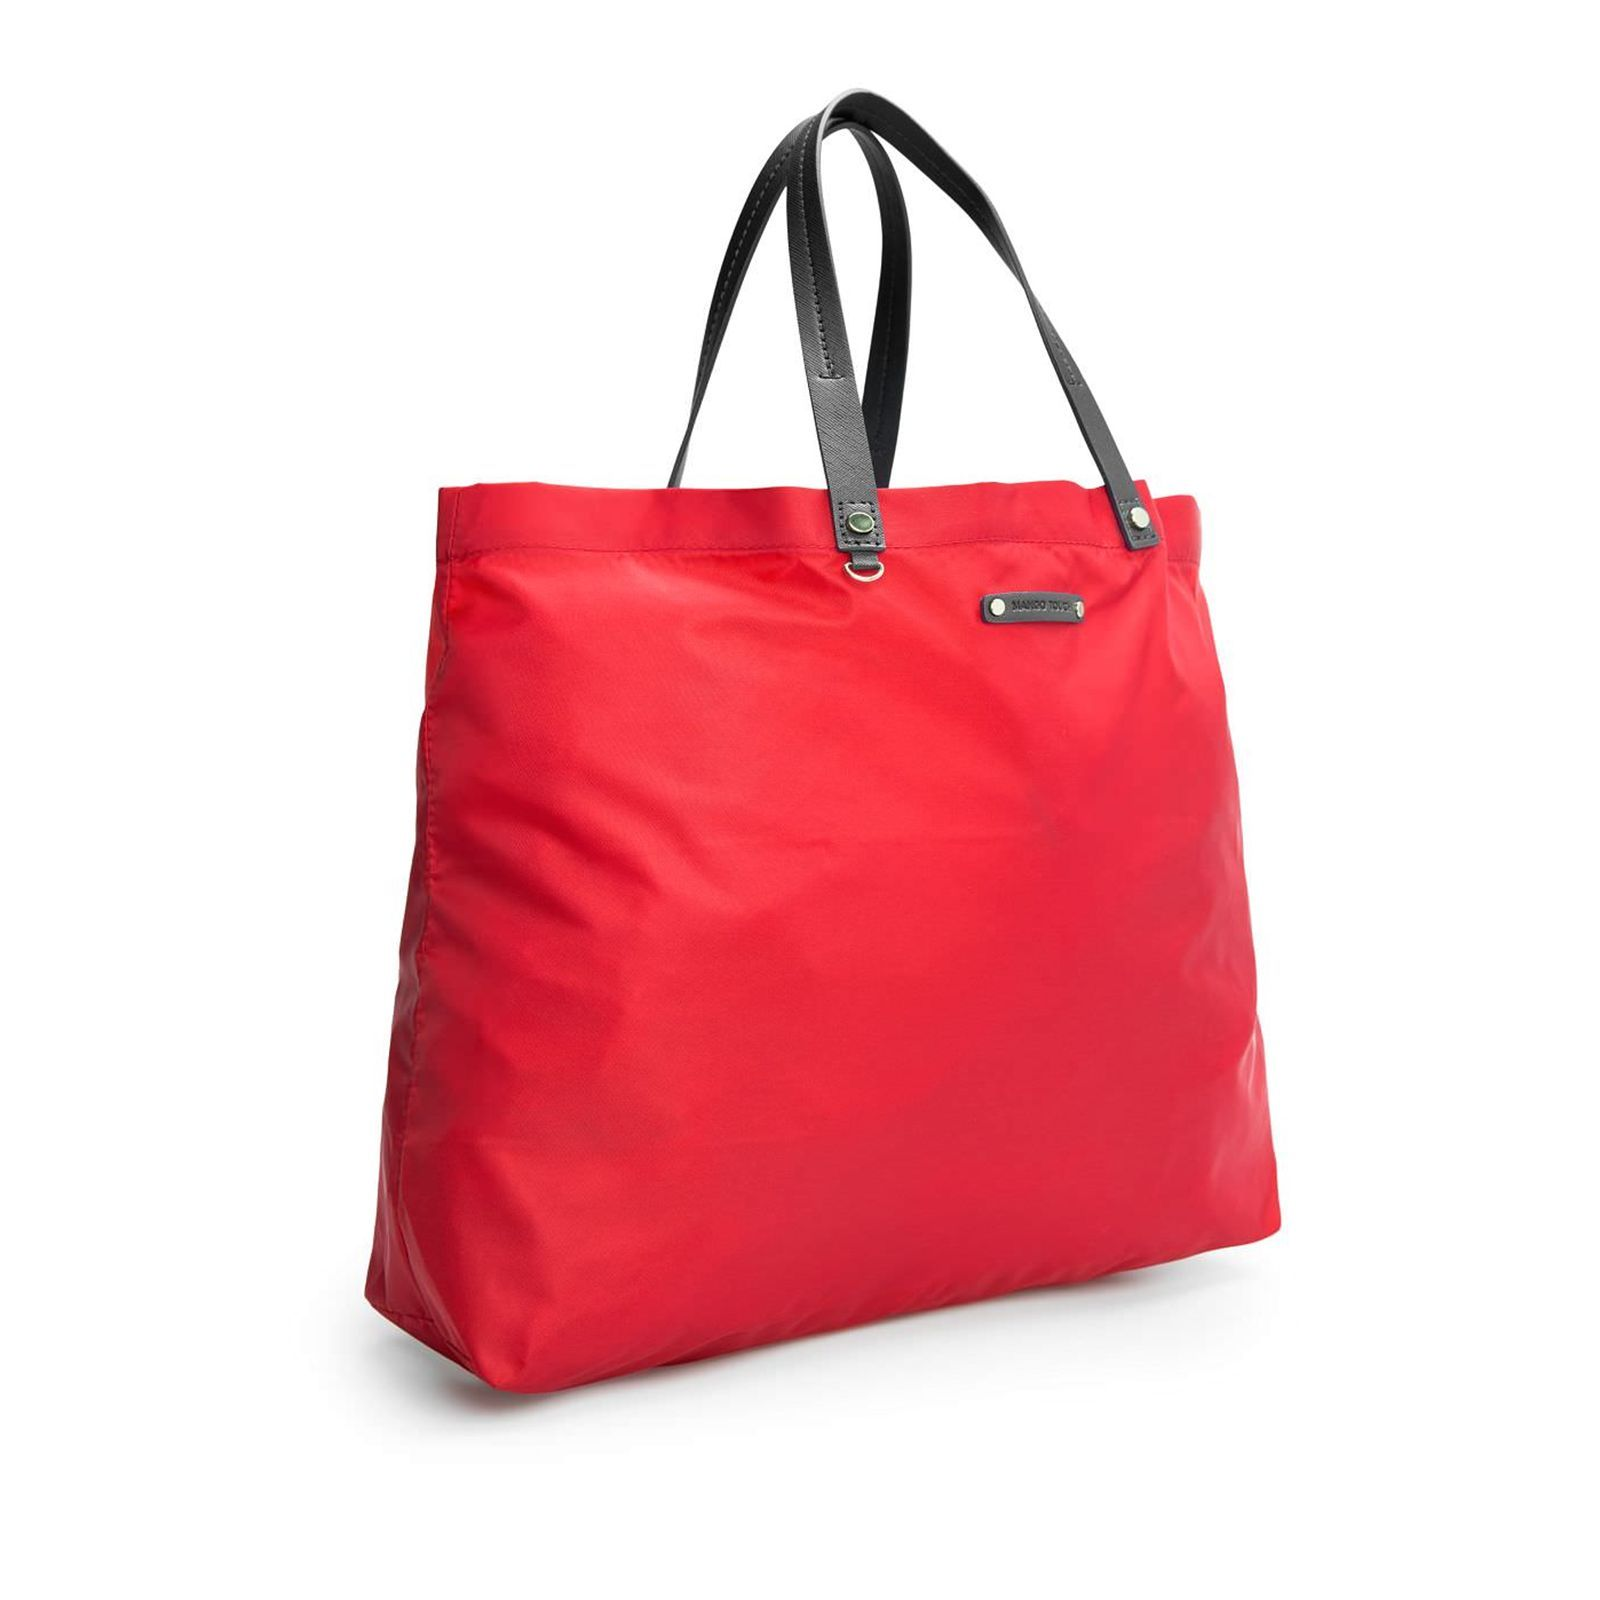 Sac shopping rouge